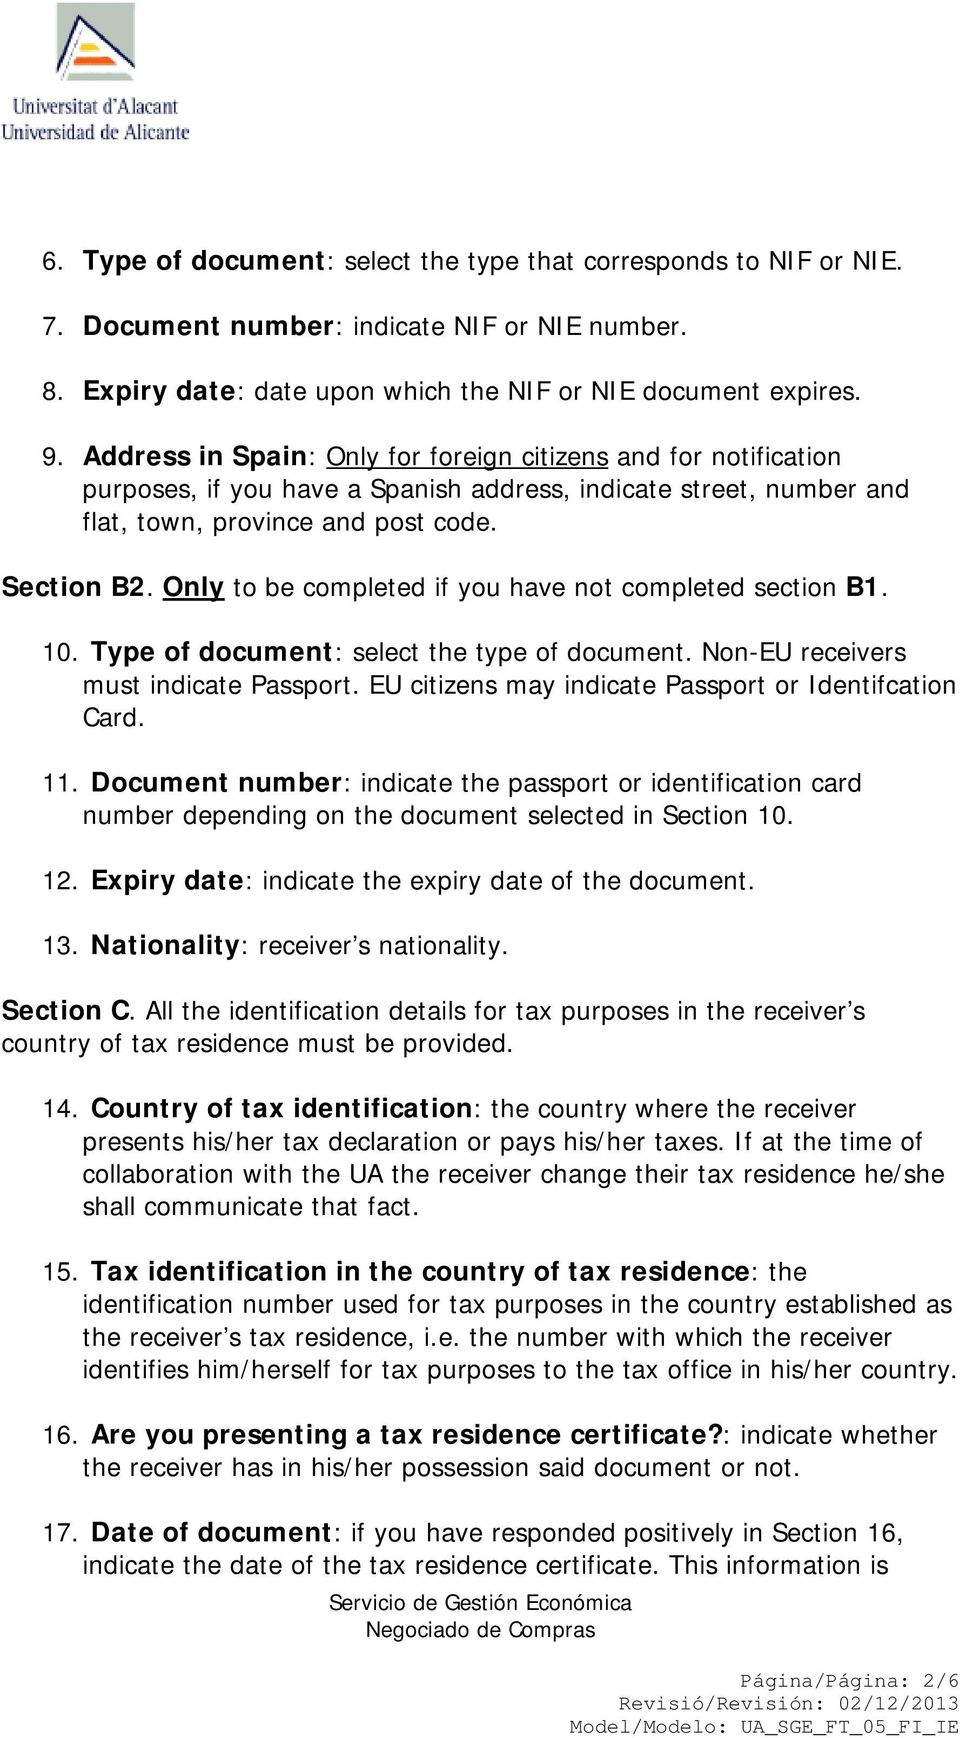 Only to be completed if you have not completed section B1. 10. Type of document: select the type of document. Non-EU receivers must indicate Passport.